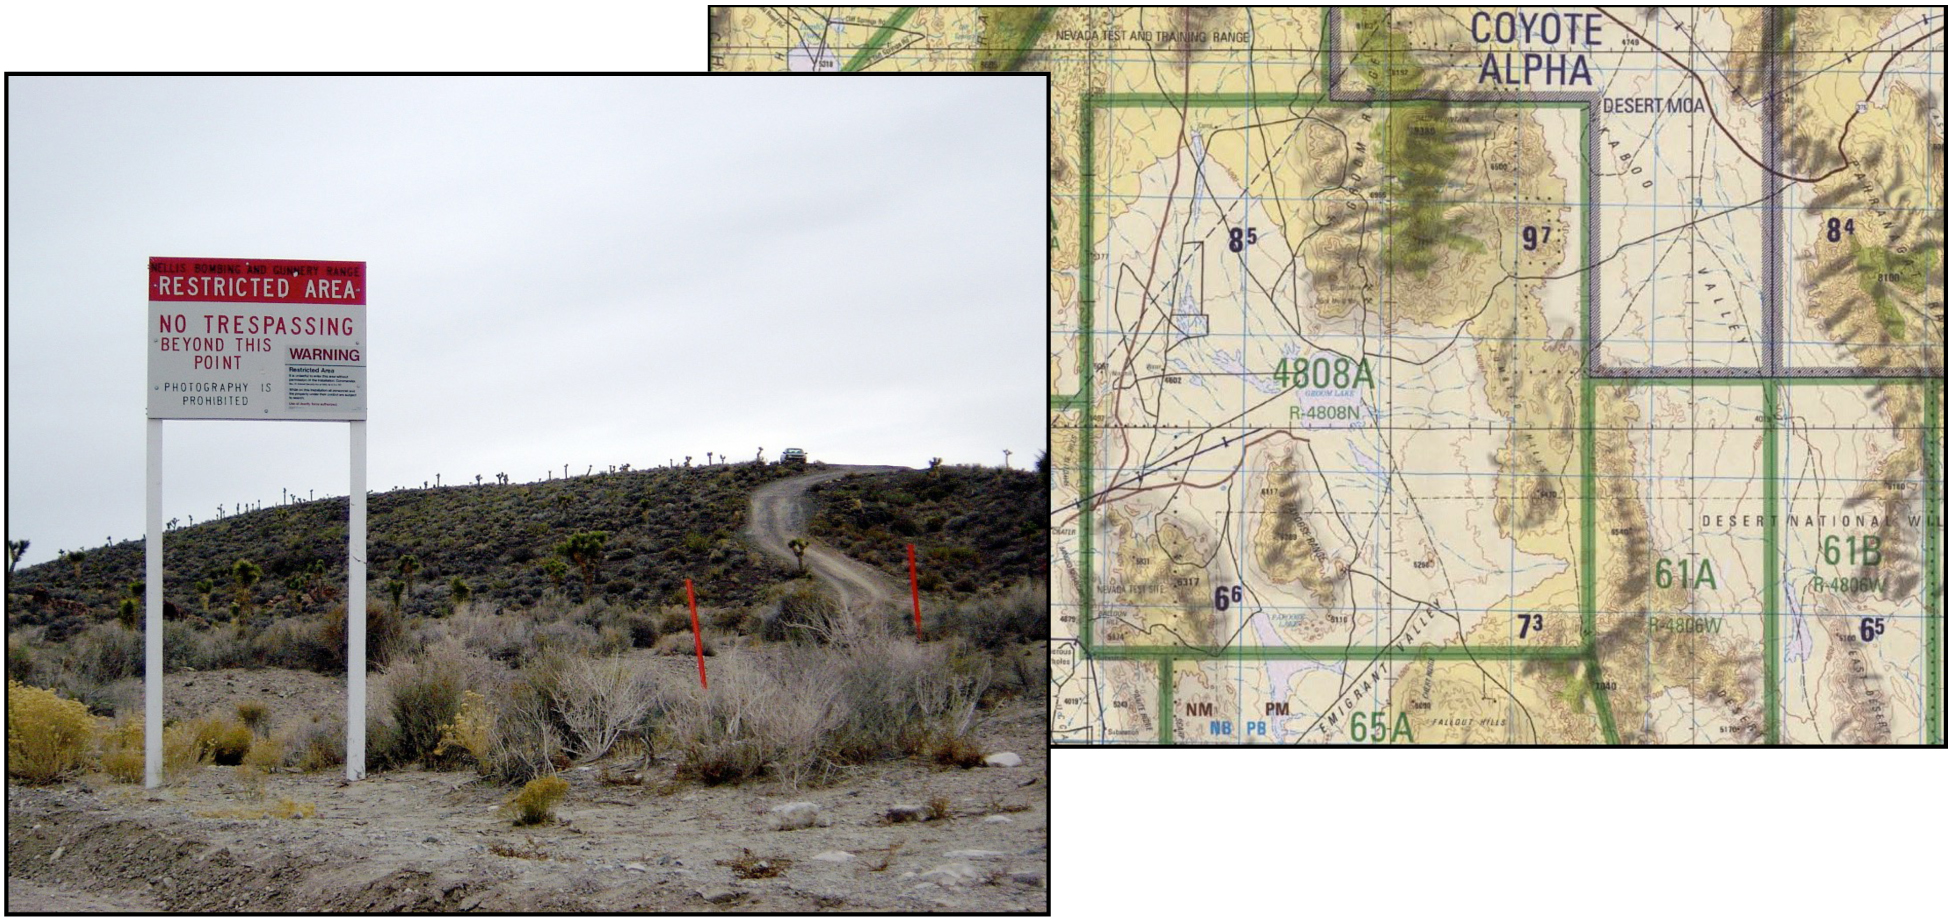 Area 51 border and warning sign —Nevada Test Range topographic chart centered on Groom   Lake and showing the restricted air-space area 4808